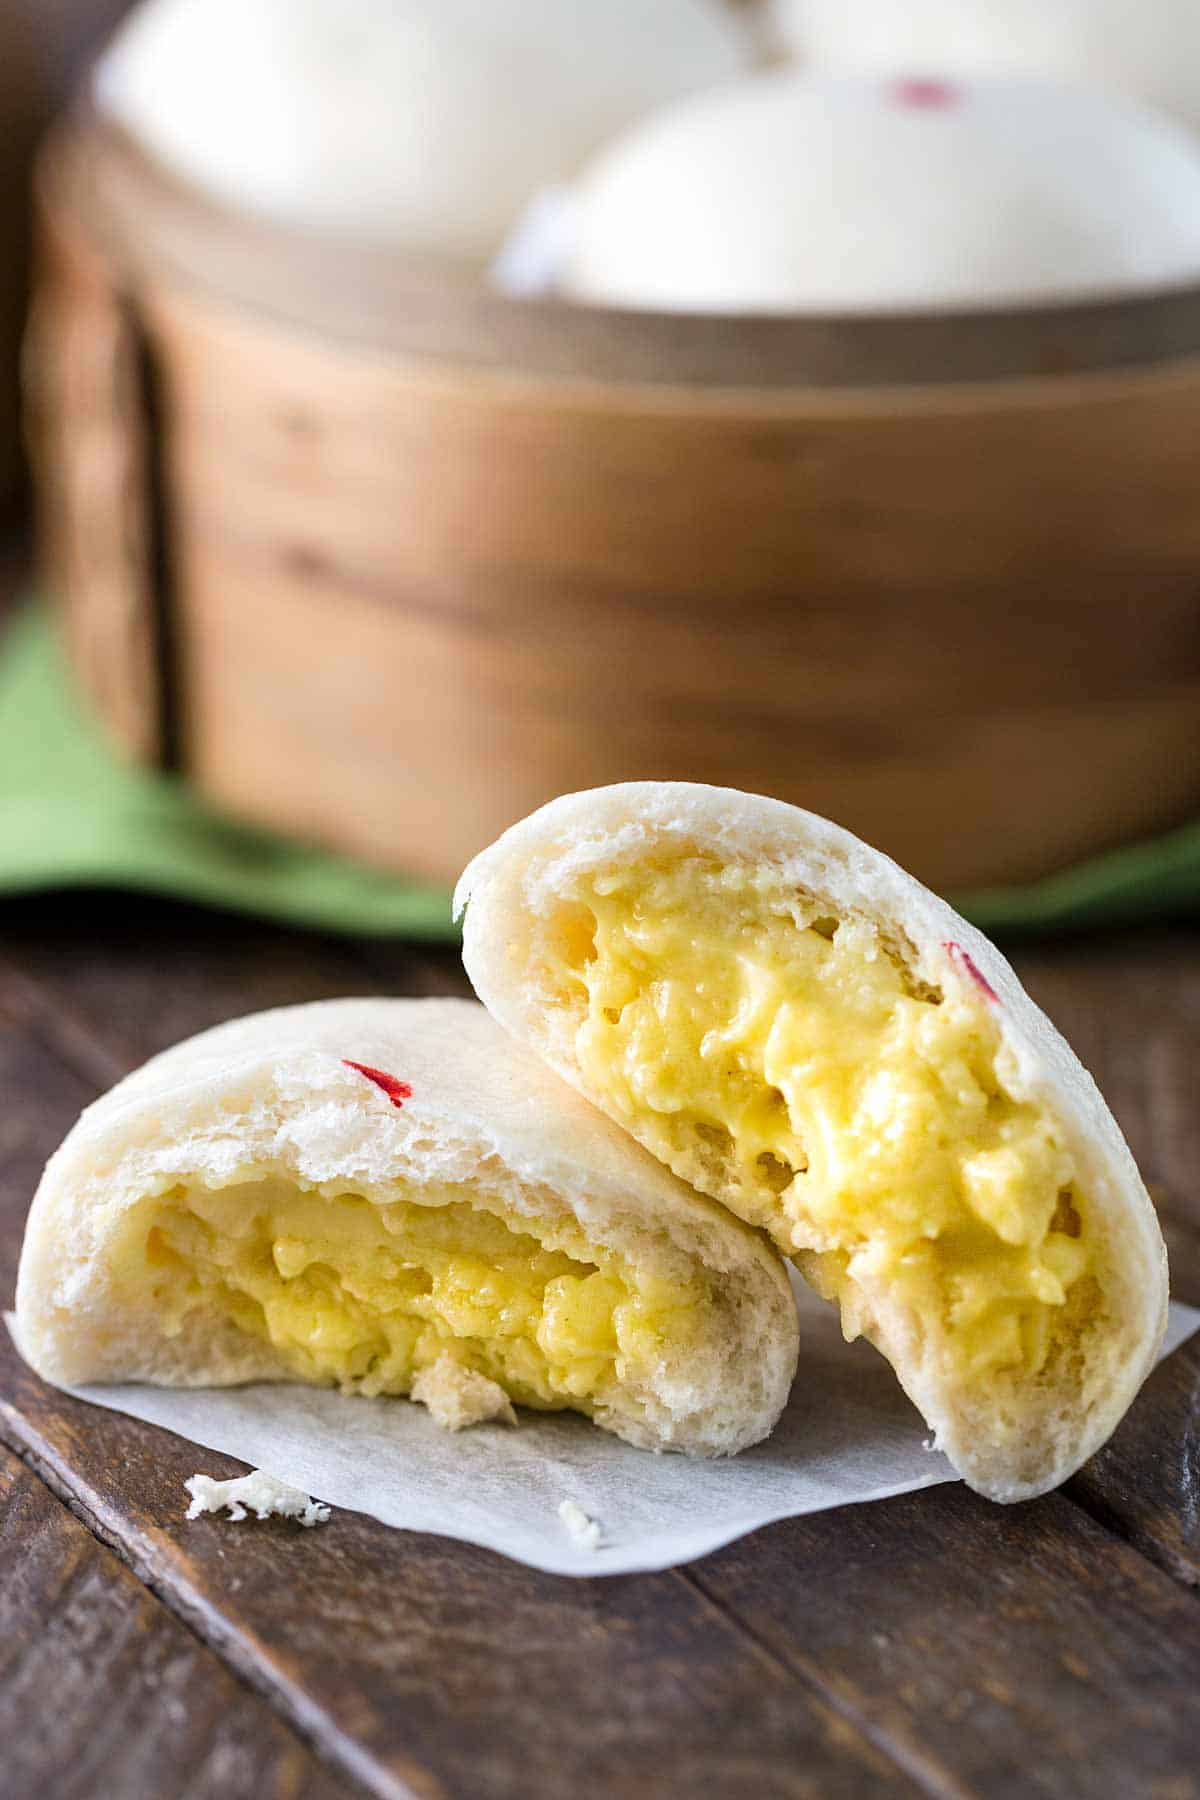 Chinese steamed buns torn in half showing the custard filling